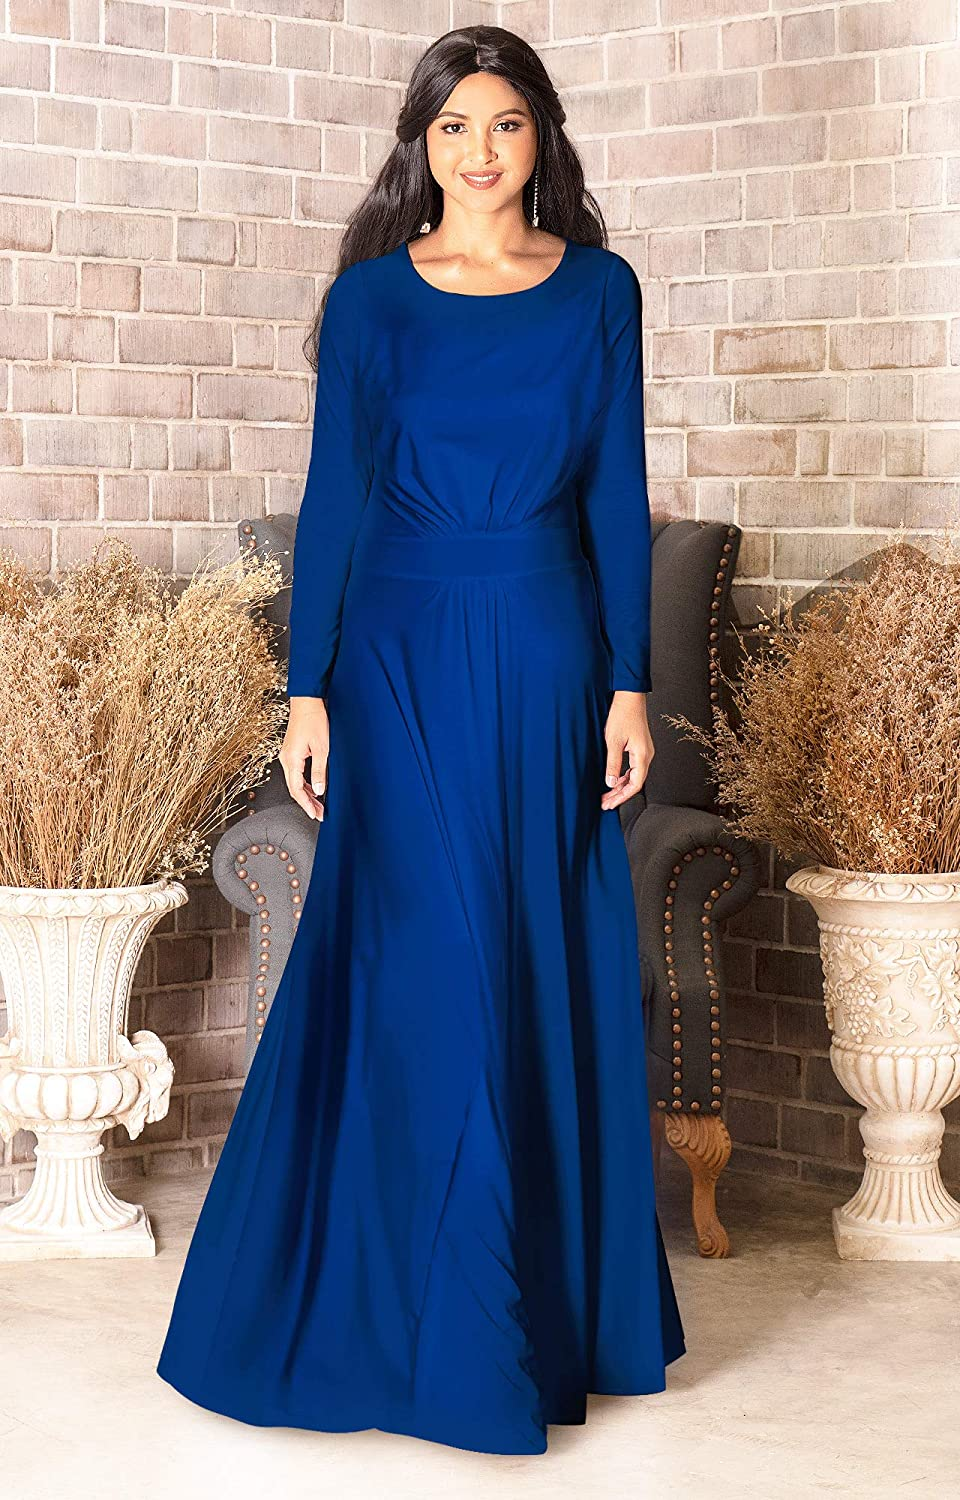 KOH KOH Sleeve Flowy Empire Waist Fall Winter Party Gown